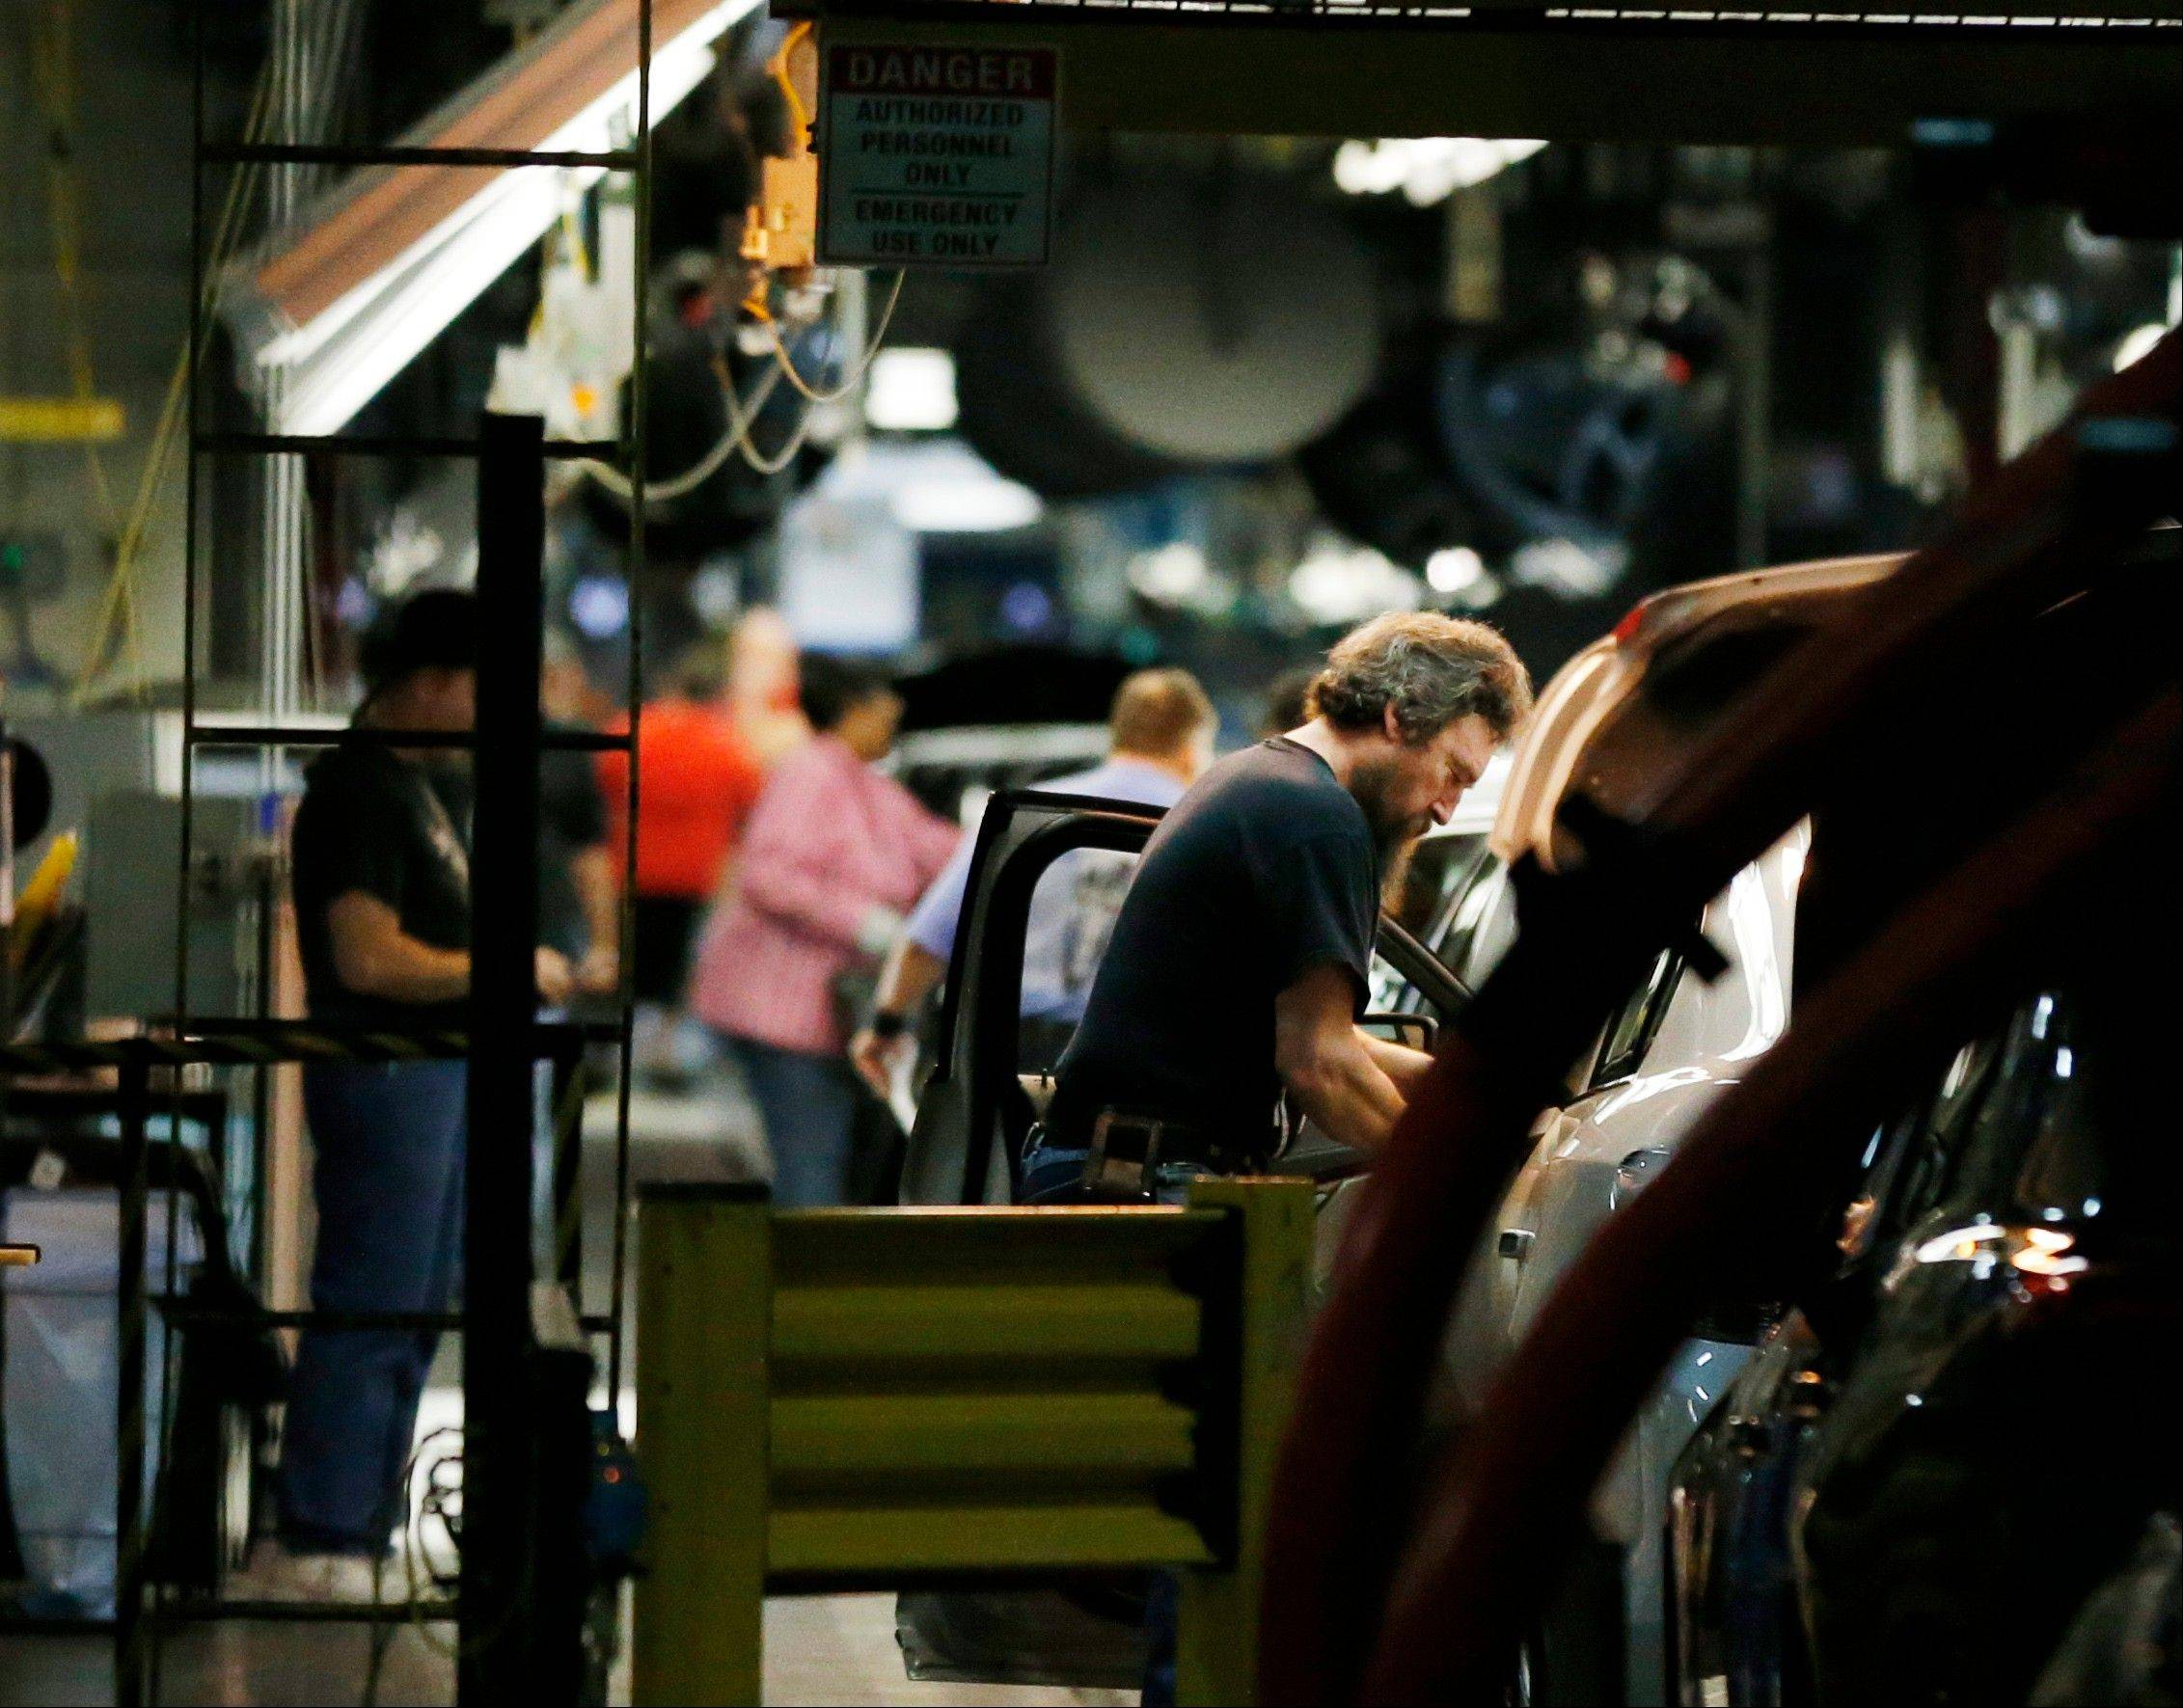 Workers assemble cars along a line at the General Motors Fairfax plant in Kansas City, Kan. U.S. manufacturing activity grew at a faster pace in January, driven by an increase in new orders and more hiring at factories.